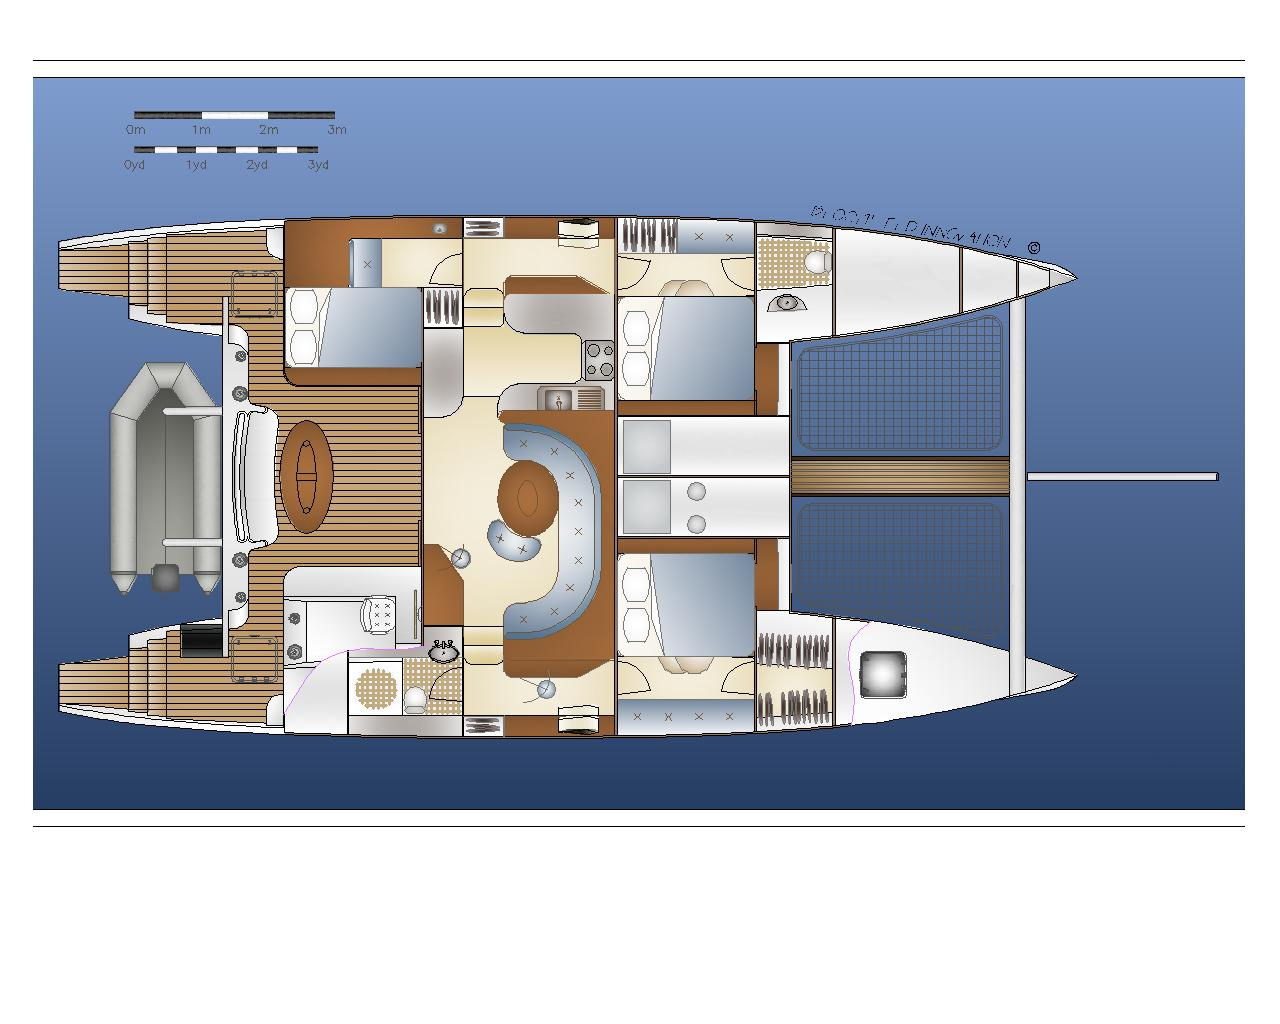 Don T Spend Your Money On Catamaran Boat Plans Toxovybys